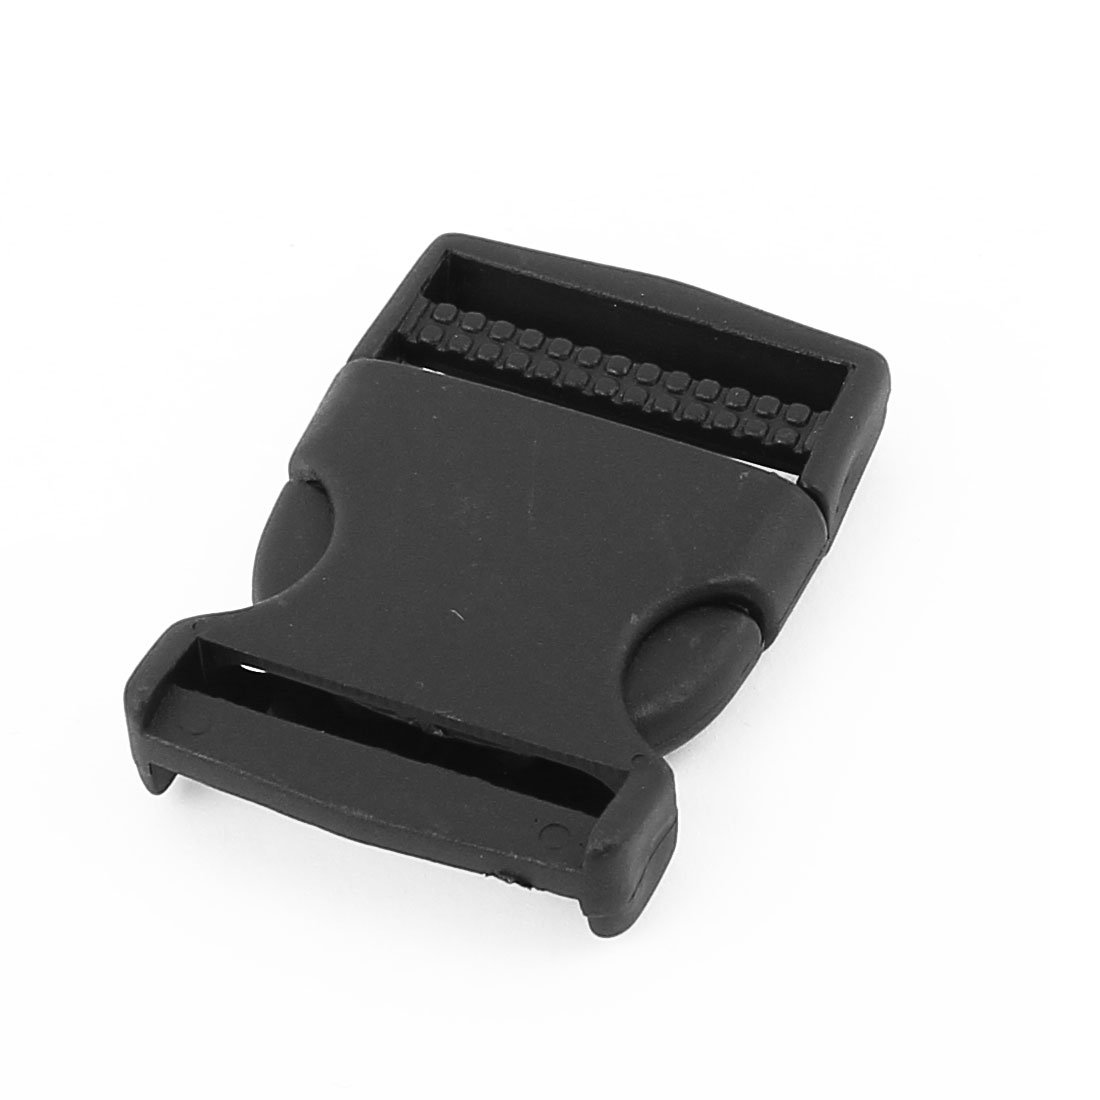 Belt Connecting Plastic Quick Safety Release Buckle 6.5 x 4.5cm Black